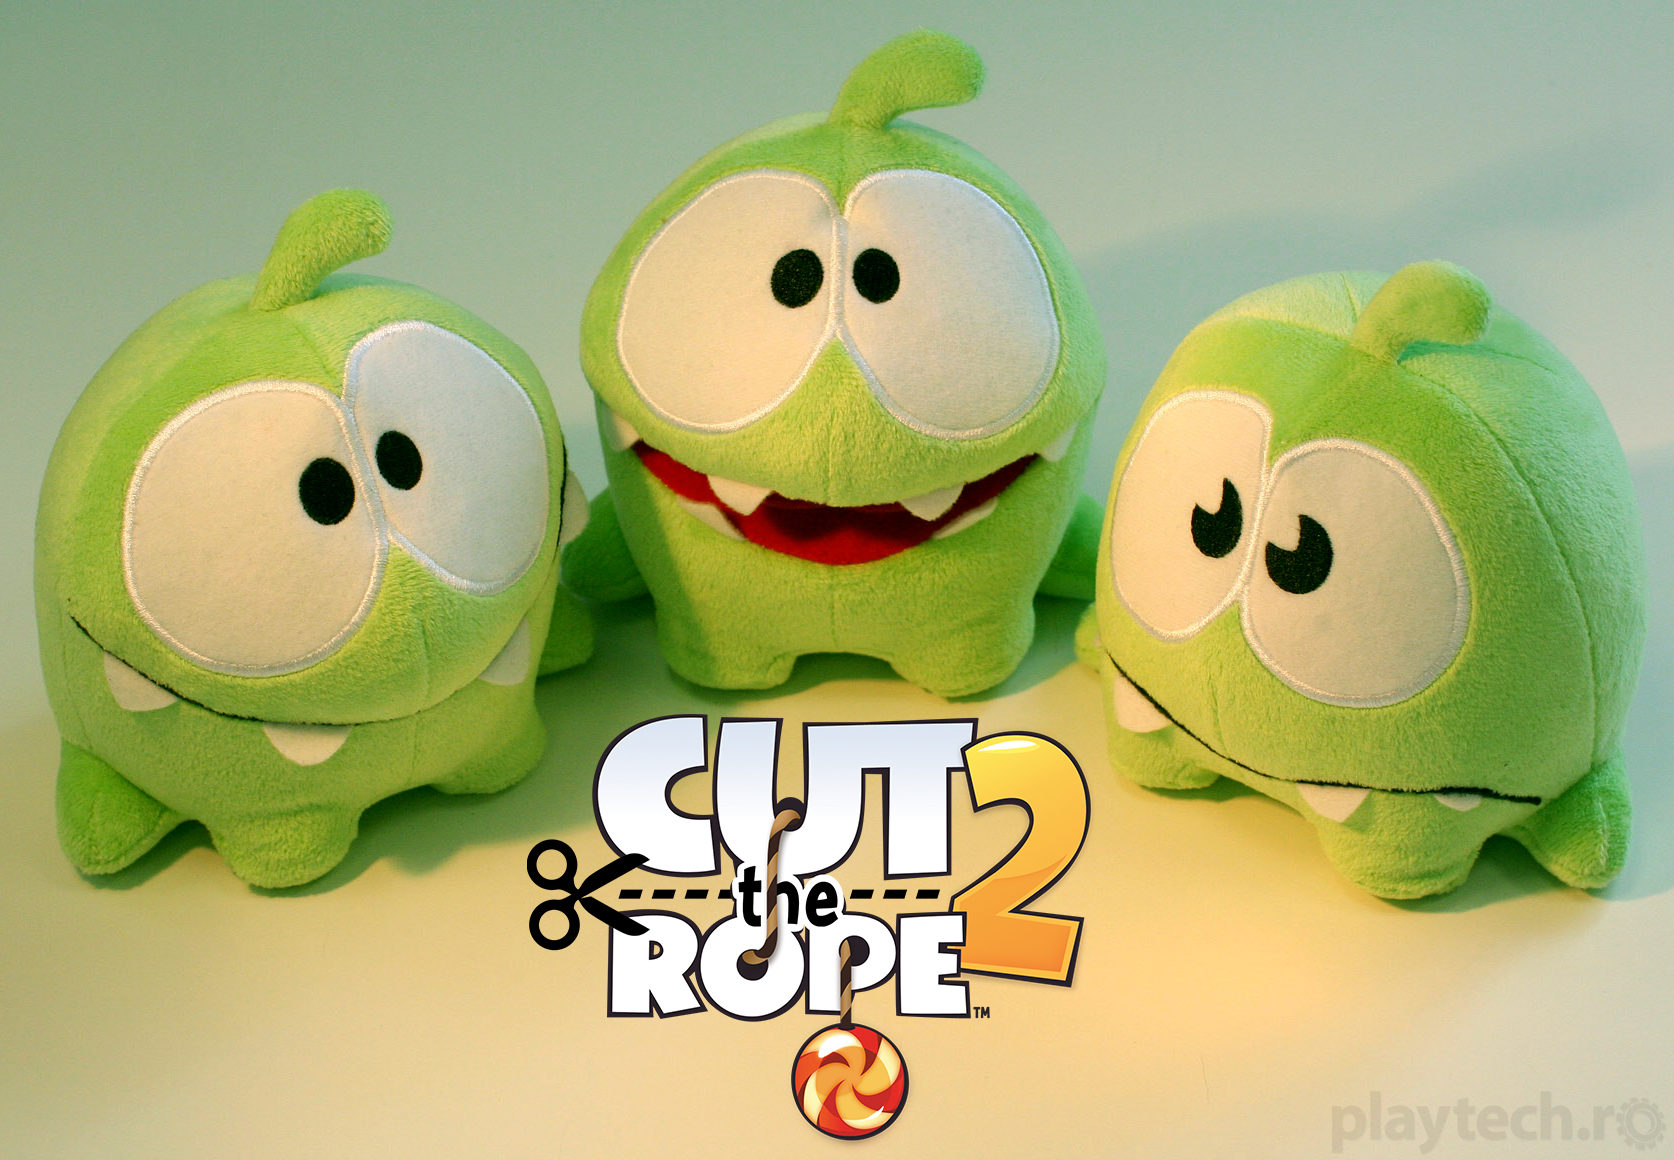 Cut The Rope 2 IOS ANDROID WP8